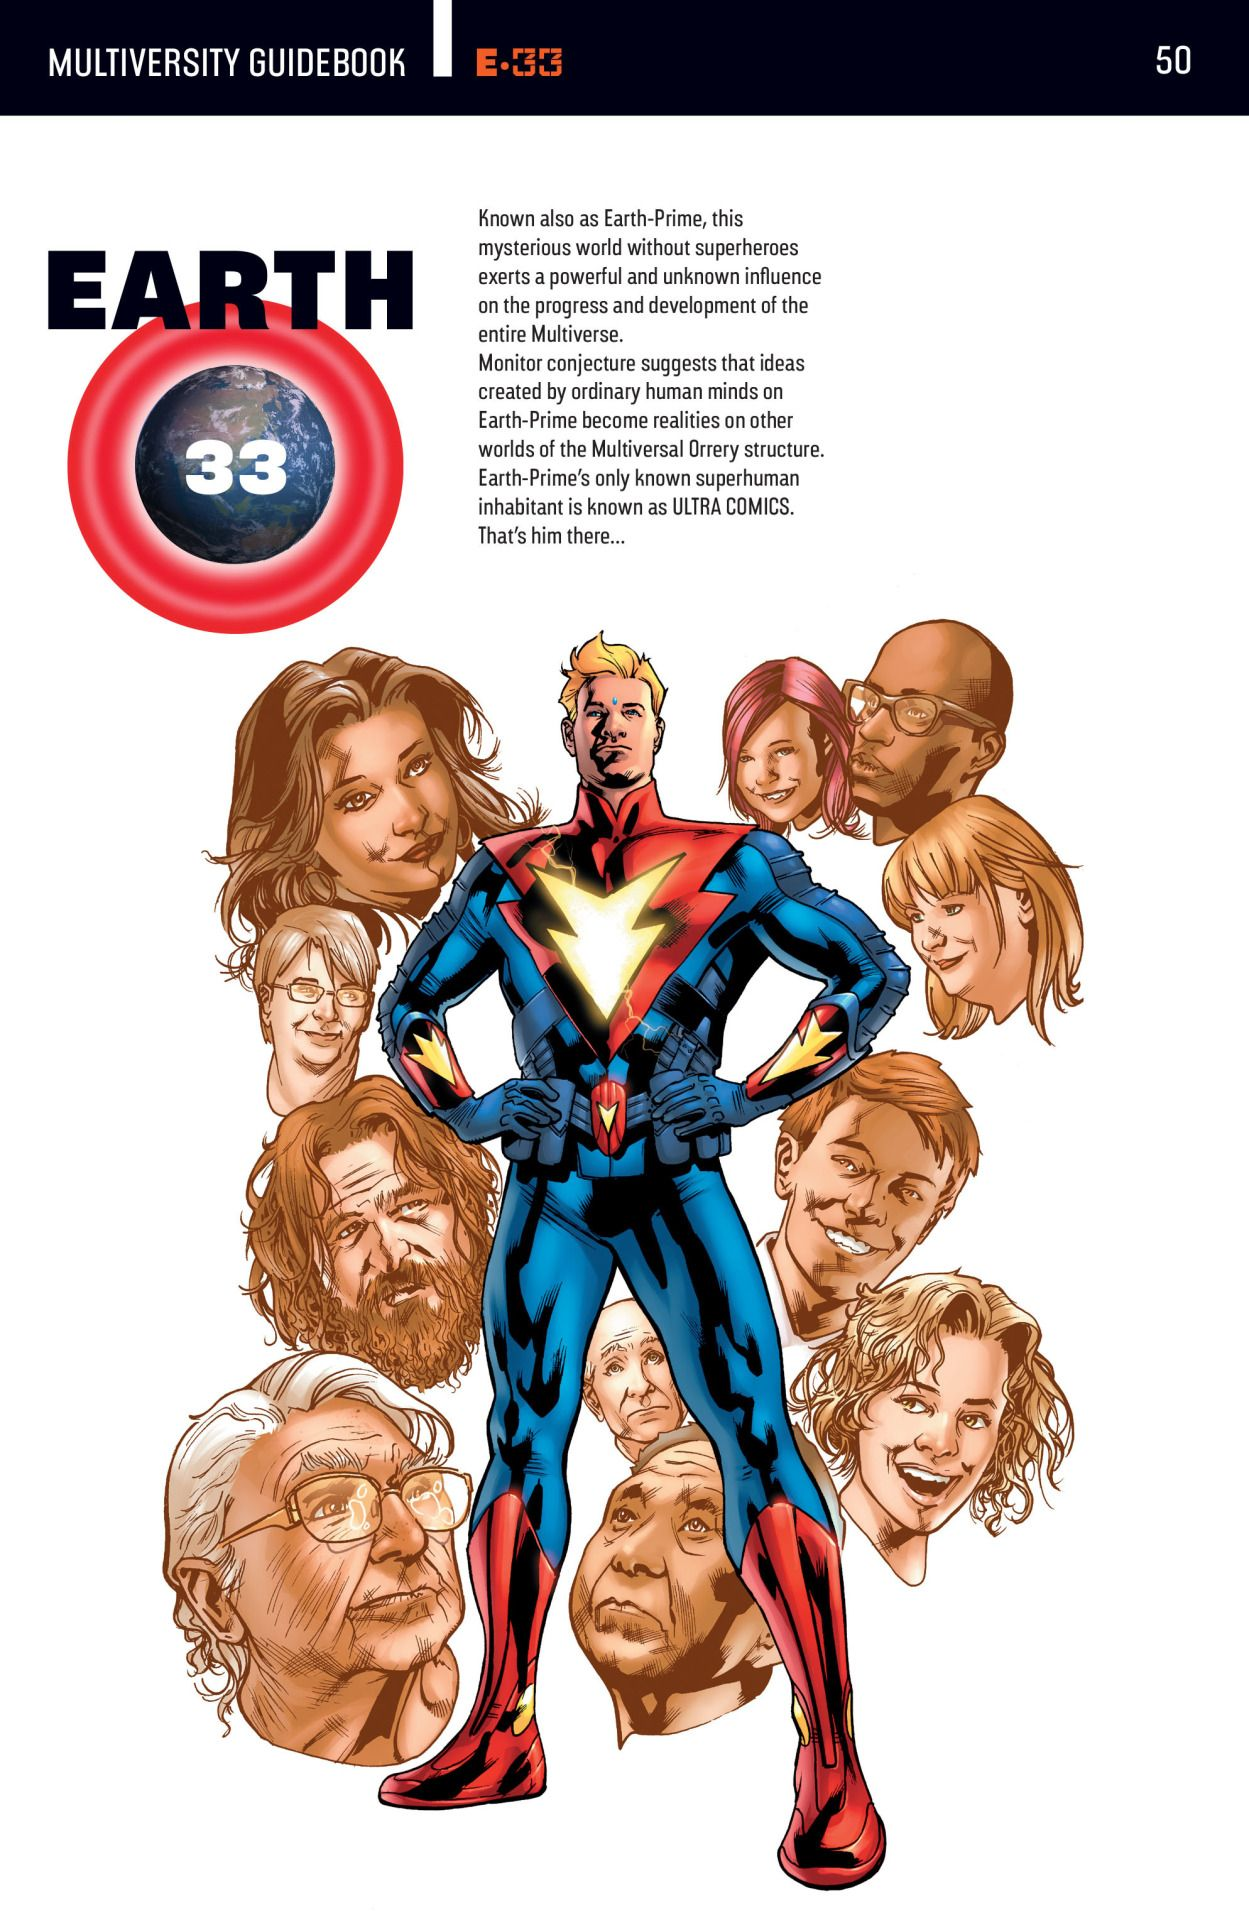 Earth 33 Known As Earth Prime This Mysterious World Without Superheroes Exerts A Powerful And Unknown Influence Superhero Comic Dc Comics Characters Superhero